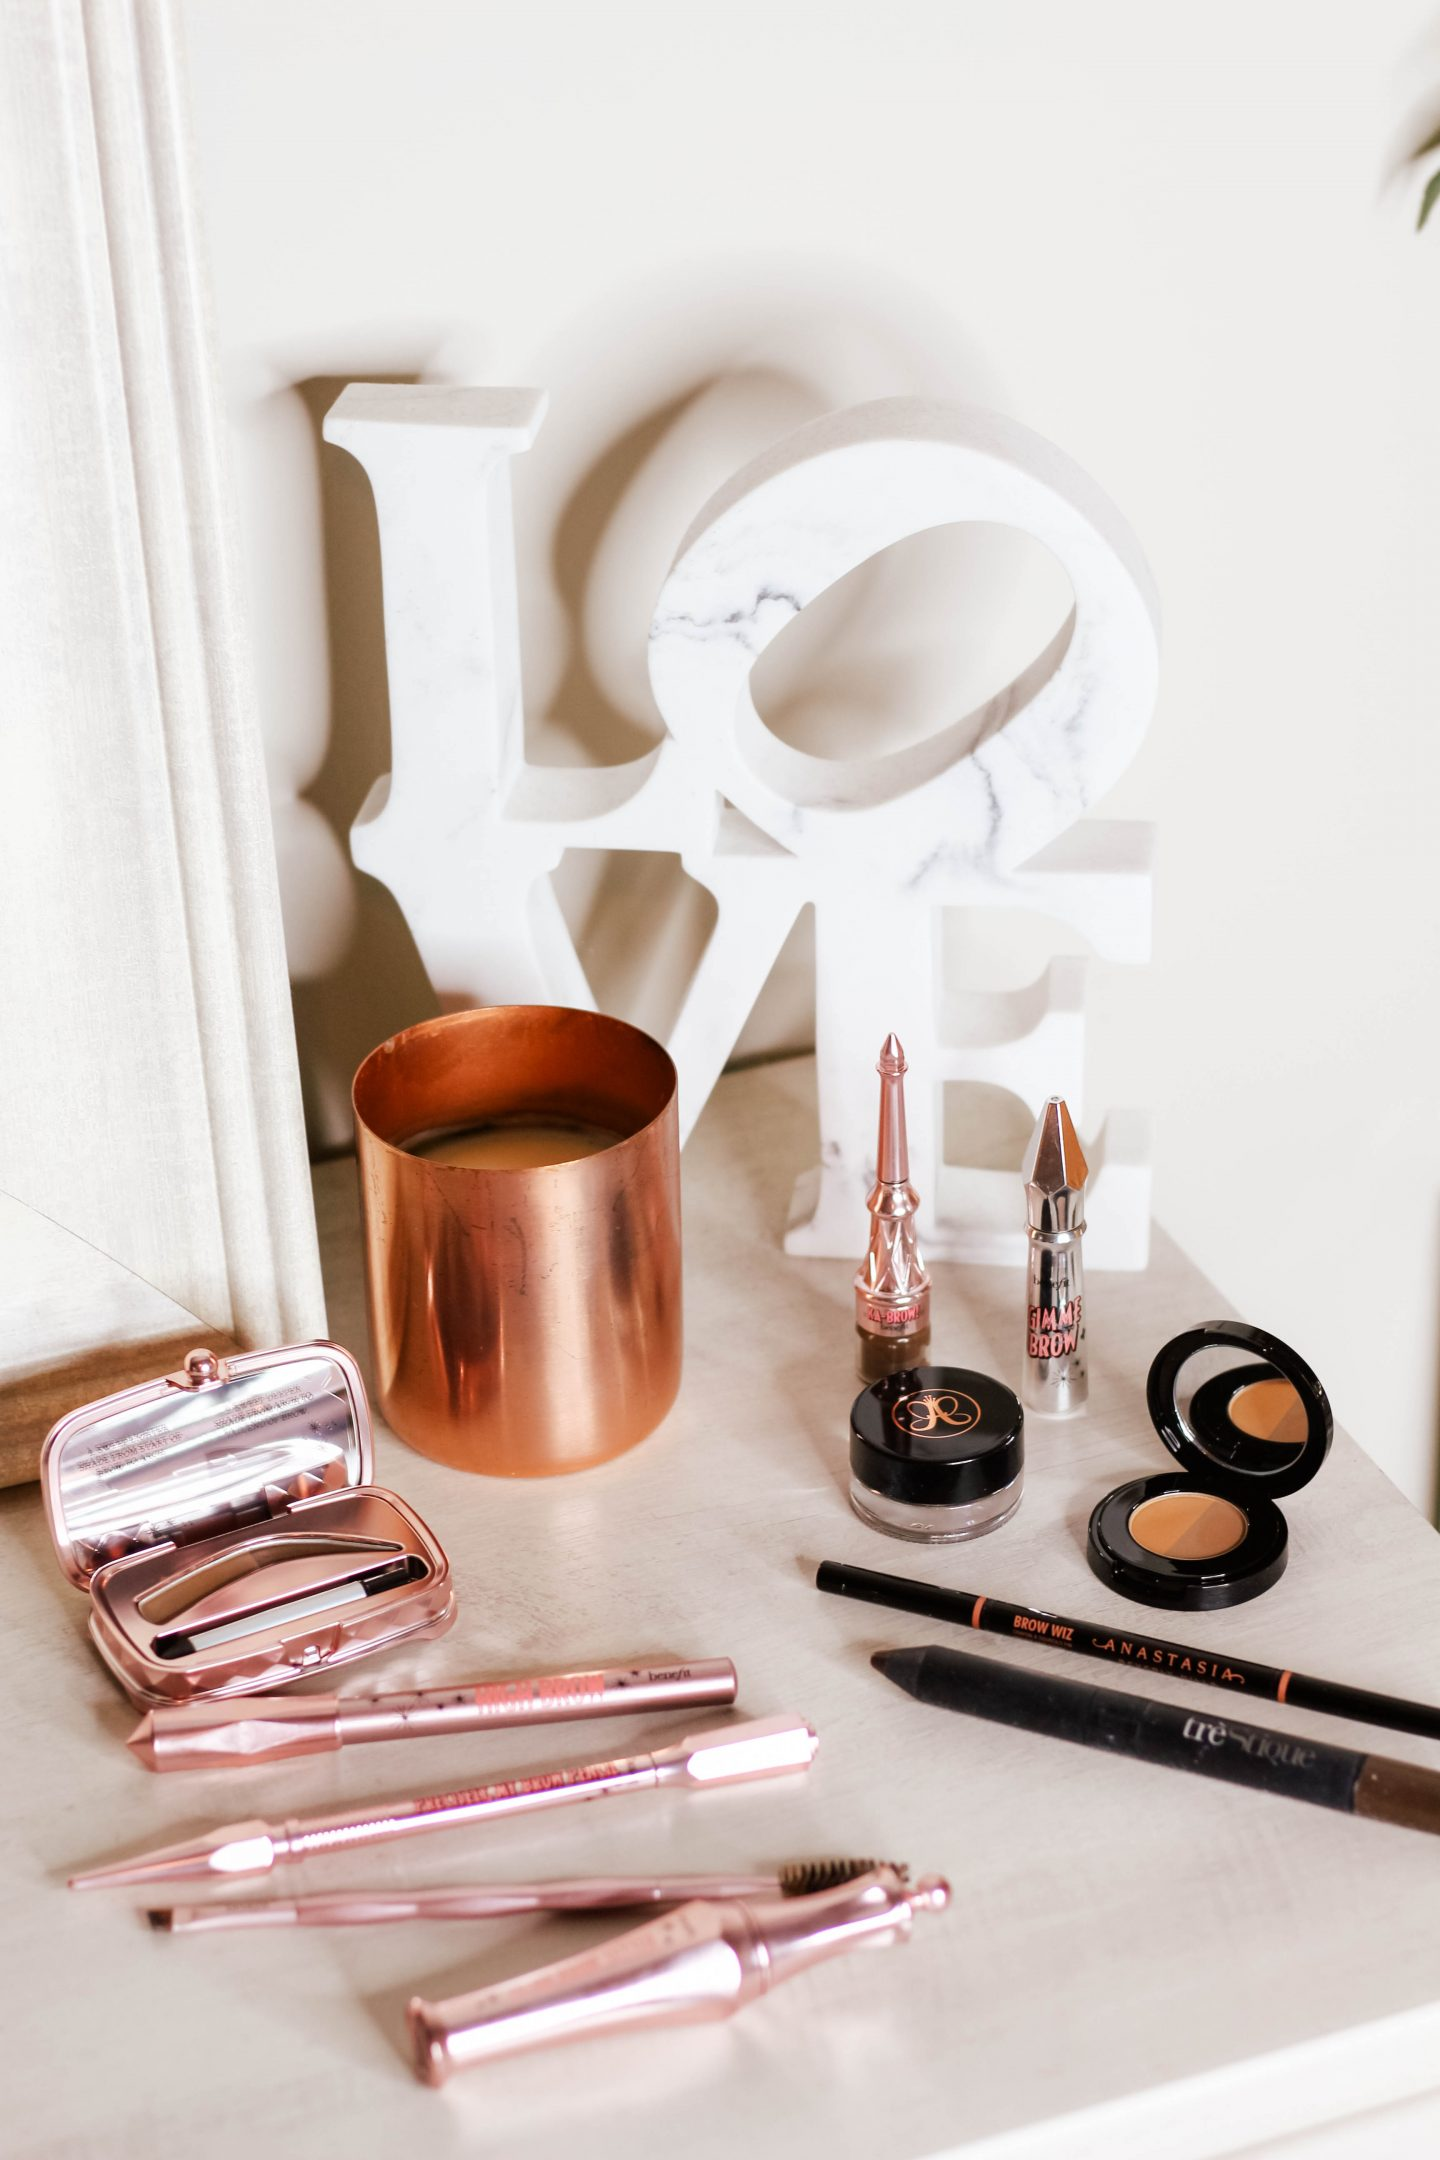 My Go-To Brow Products